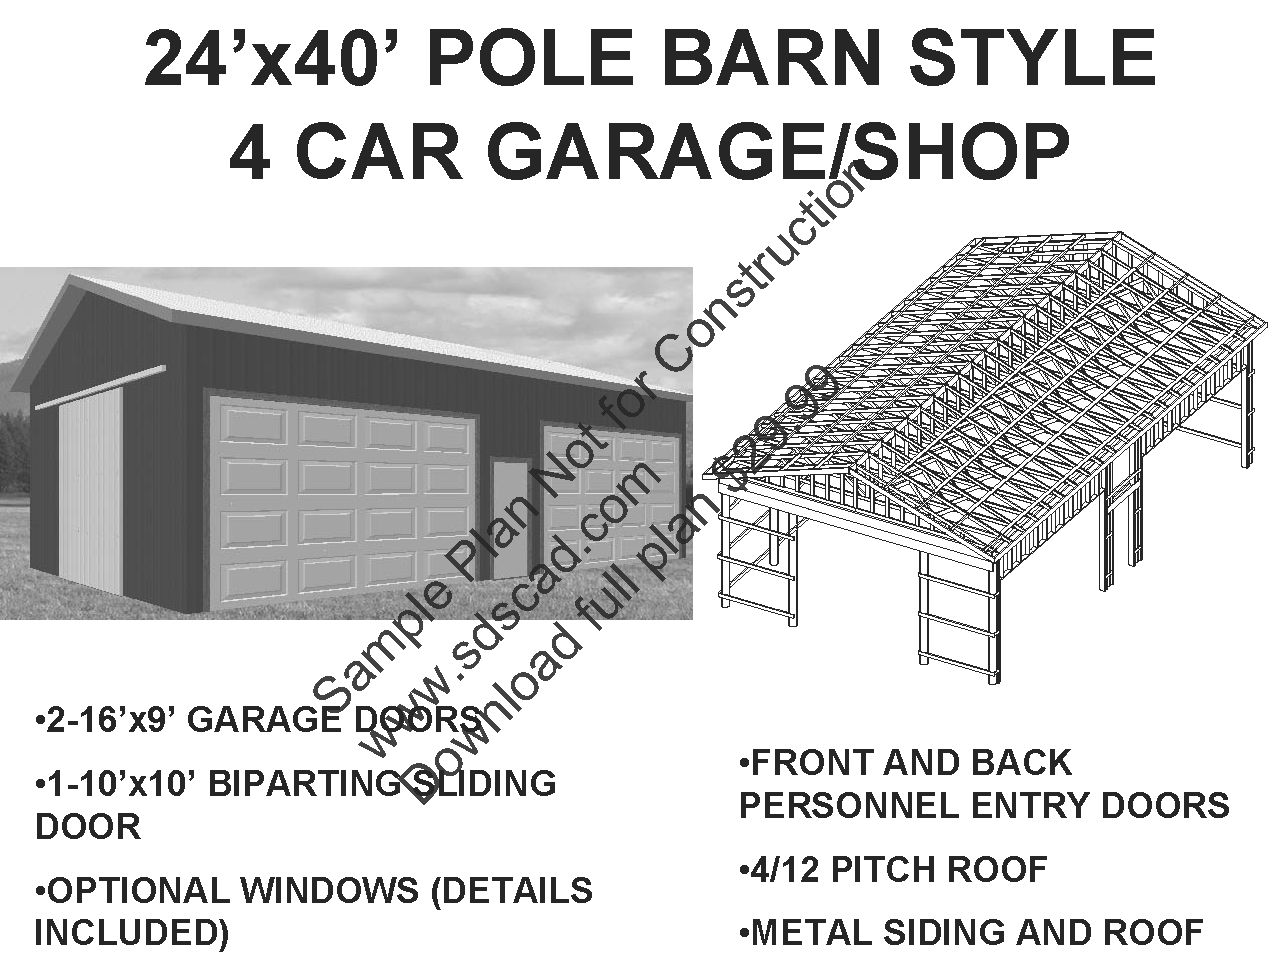 Pole barn plans sds plans pole barns pinterest for Pole barn blueprints free